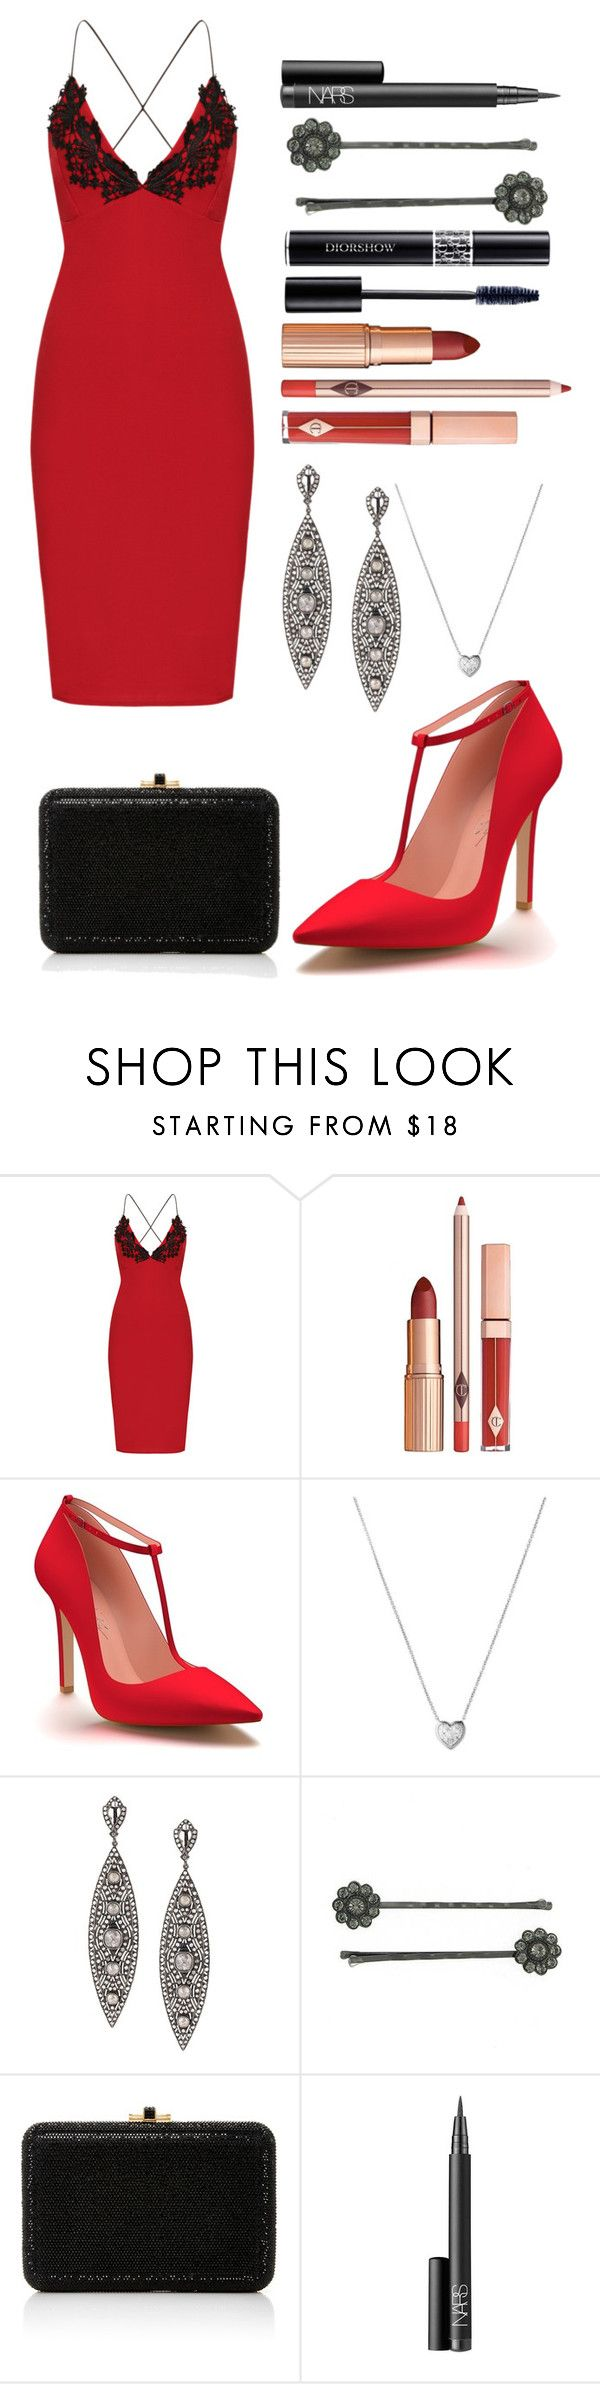 """""""Untitled #1129"""" by amyburns567 ❤ liked on Polyvore featuring WearAll, Shoes of Prey, Links of London, Loree Rodkin, 1928, Judith Leiber, NARS Cosmetics and Christian Dior https://ladieshighheelshoes.blogspot.com/2016/12/where-can-i-buy-trotters-angel-dark.html"""